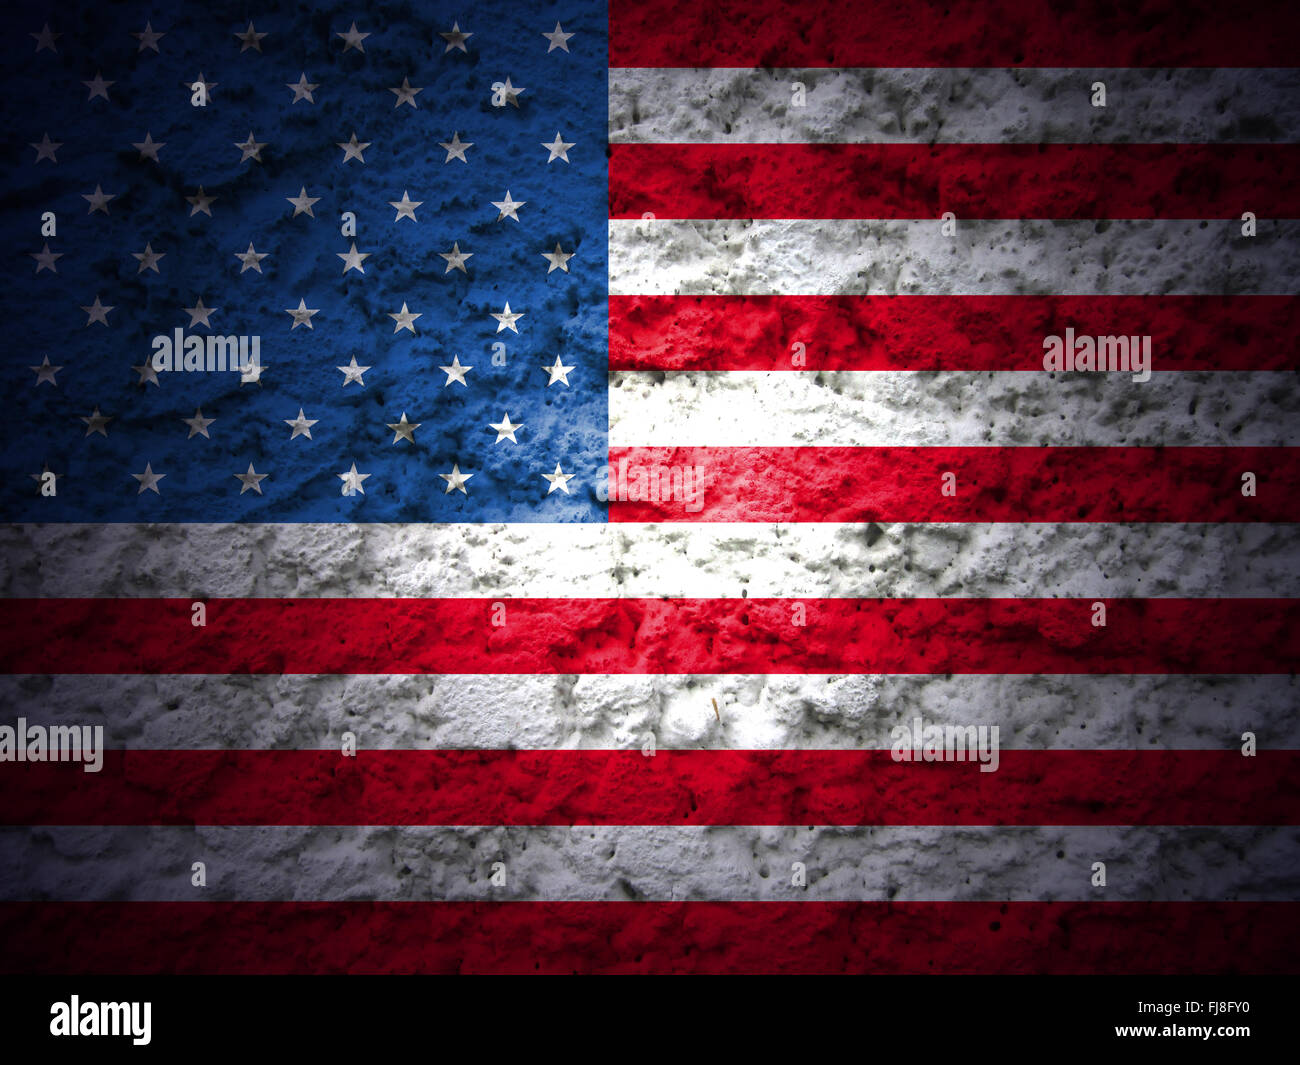 Veterans Day Background American Flag Grunge Style Stock Photo